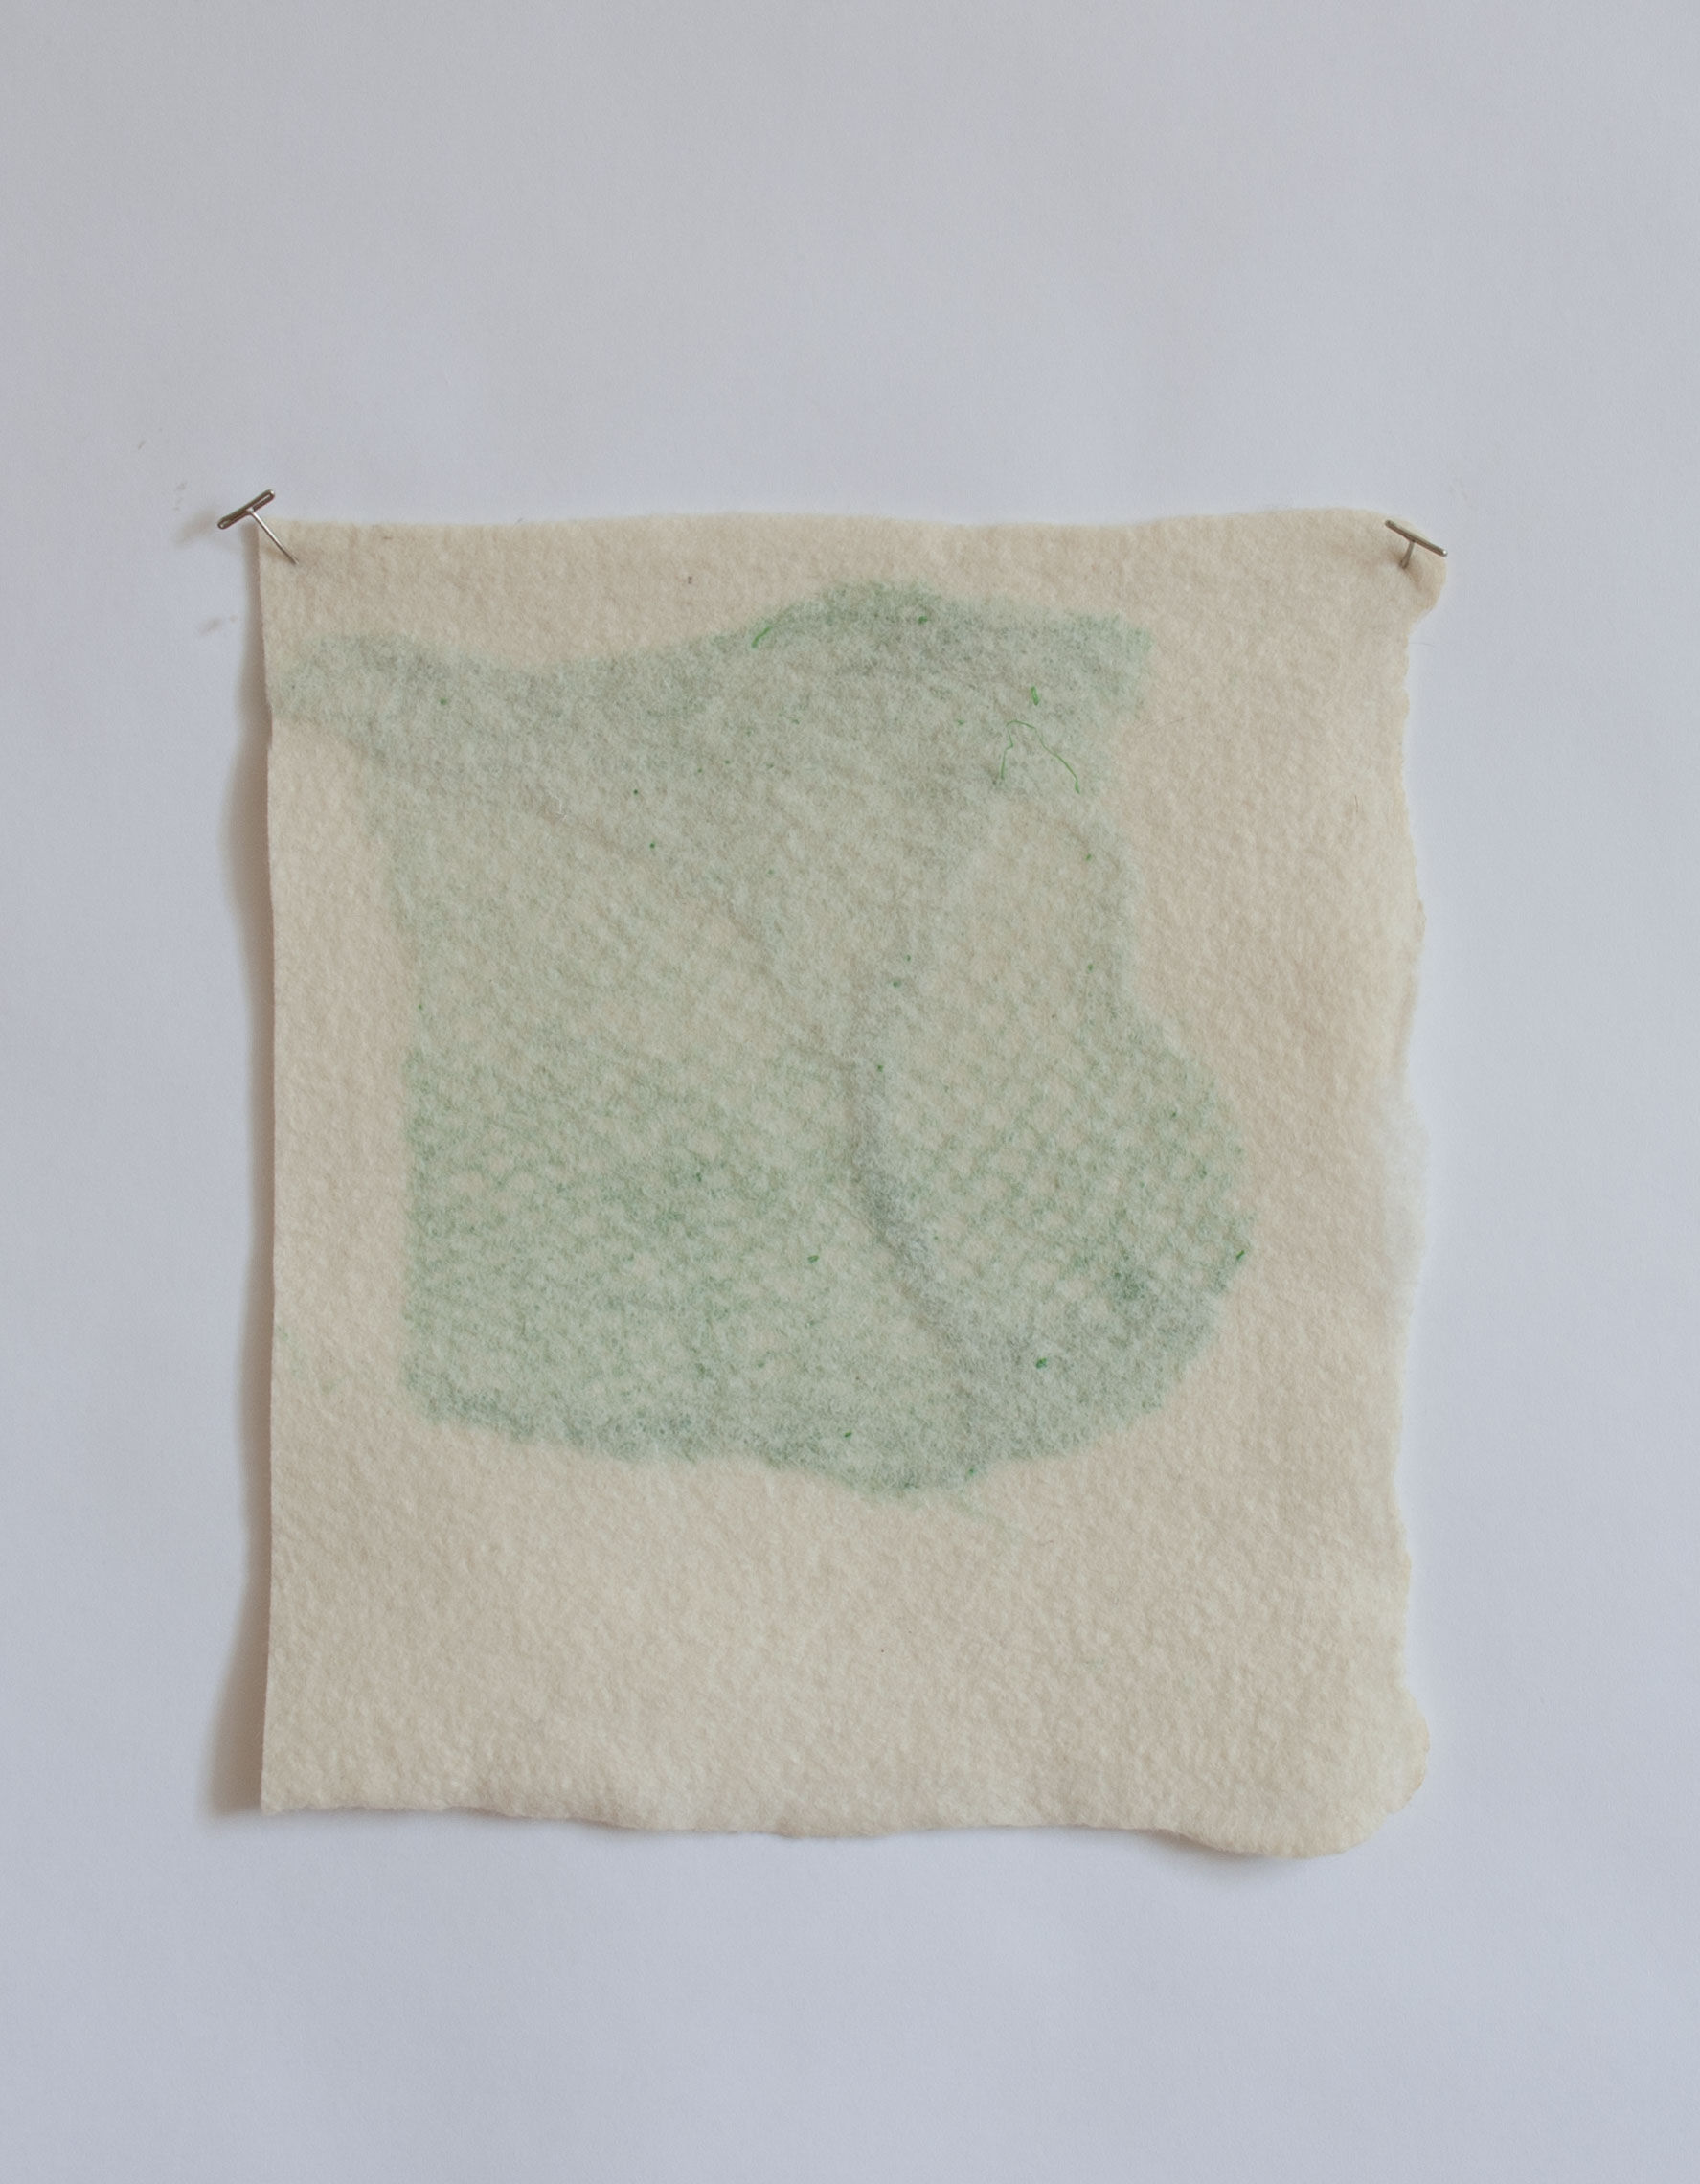 Untitled (some kind of archaeology)  Handfelted wool, plastic vegetable bag  2017